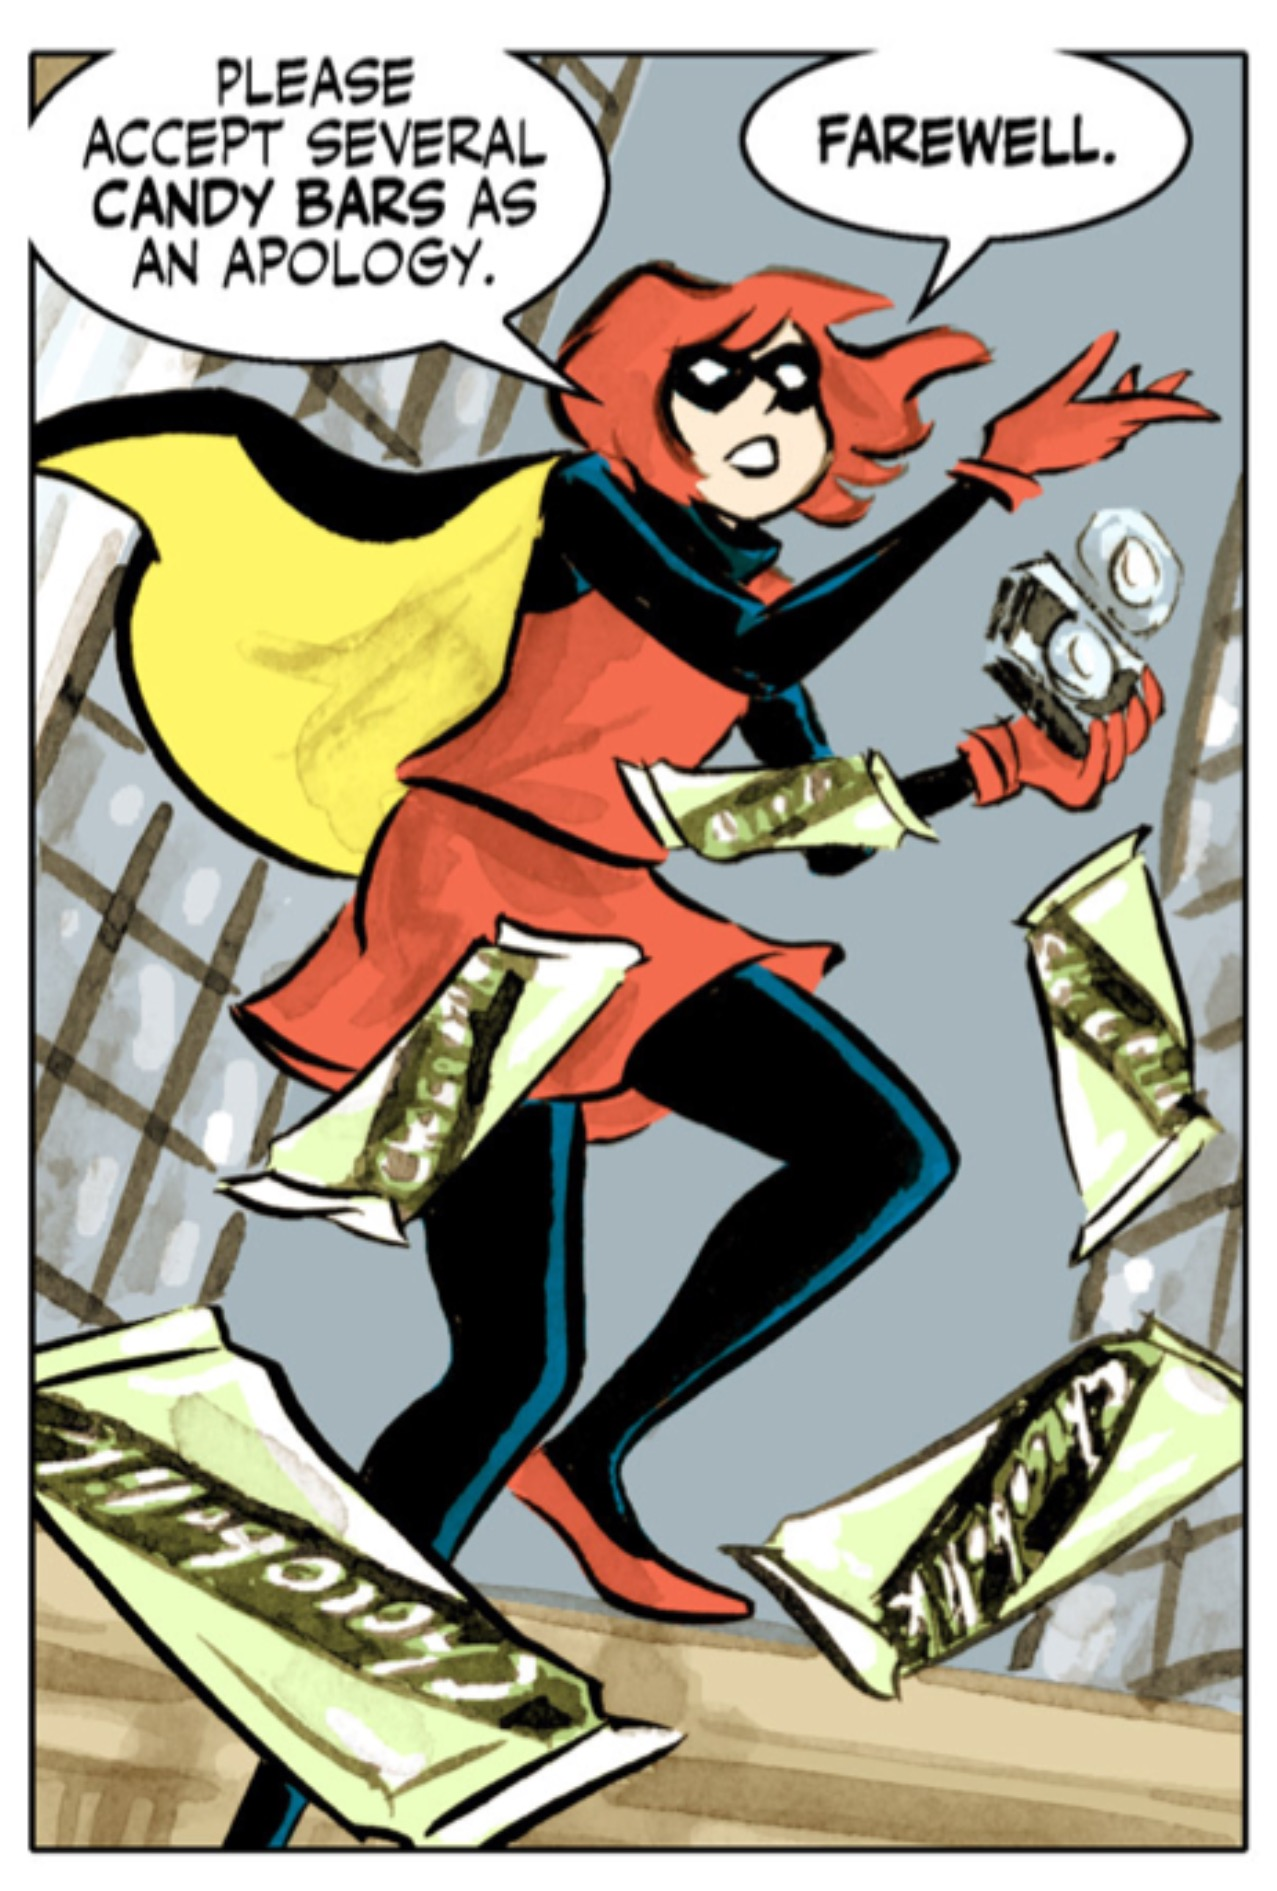 Bandette aime son chocolat. (C) 2016 Paul Tobin and Colleen Coover.